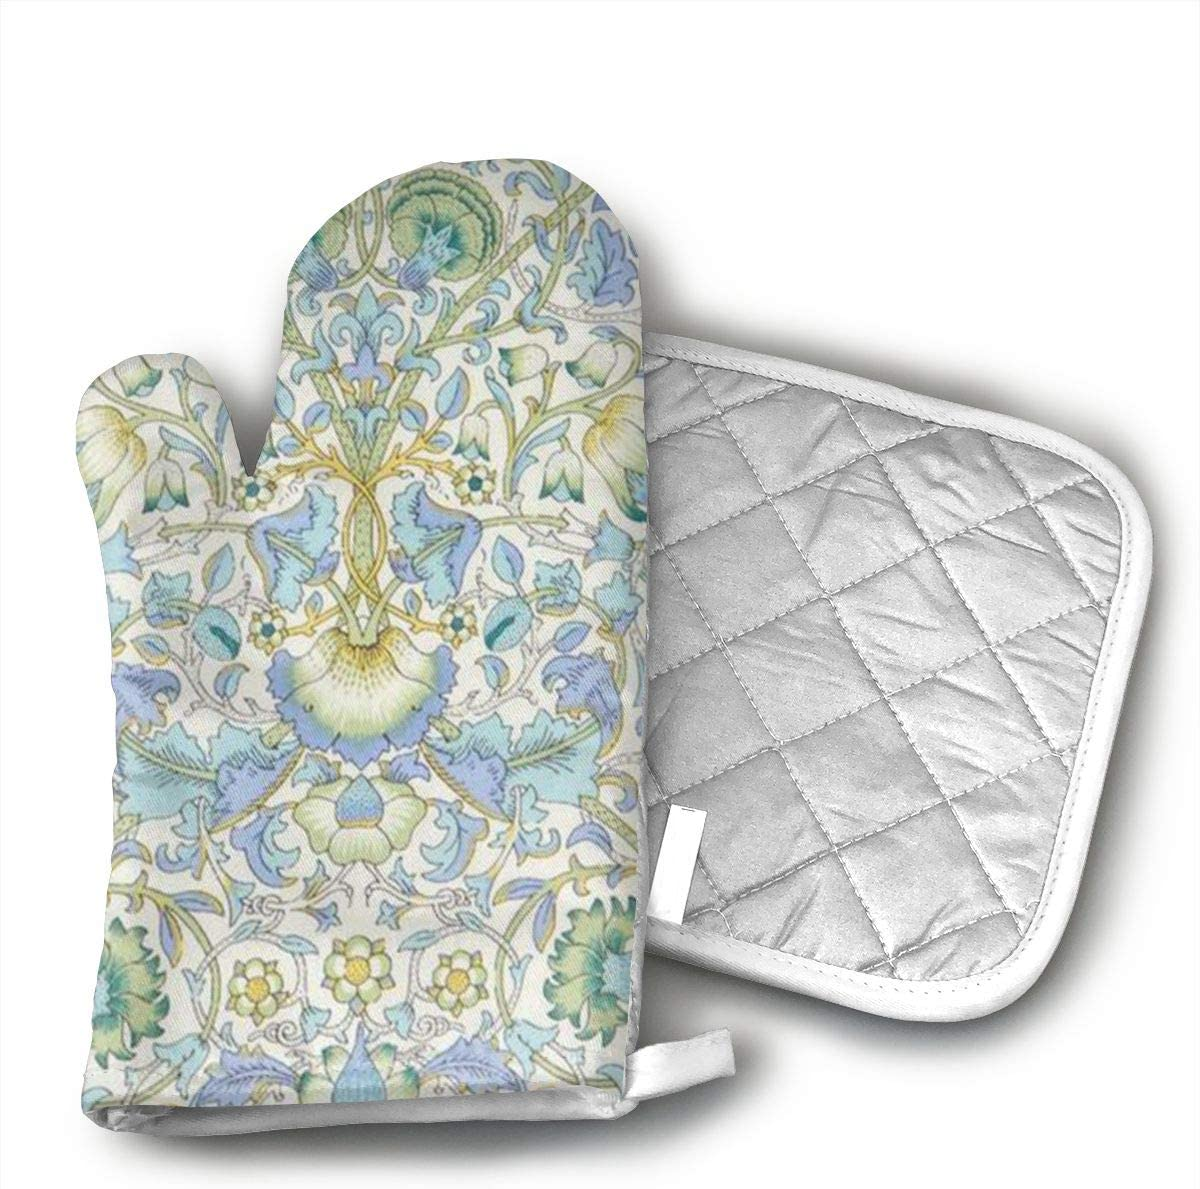 NOT Liberty of London Oven Mitts,Heat Resistant Oven Gloves Insulation Thickening Cotton Gloves Baking Kitchen Cooking Mittens with Soft Inner Lining